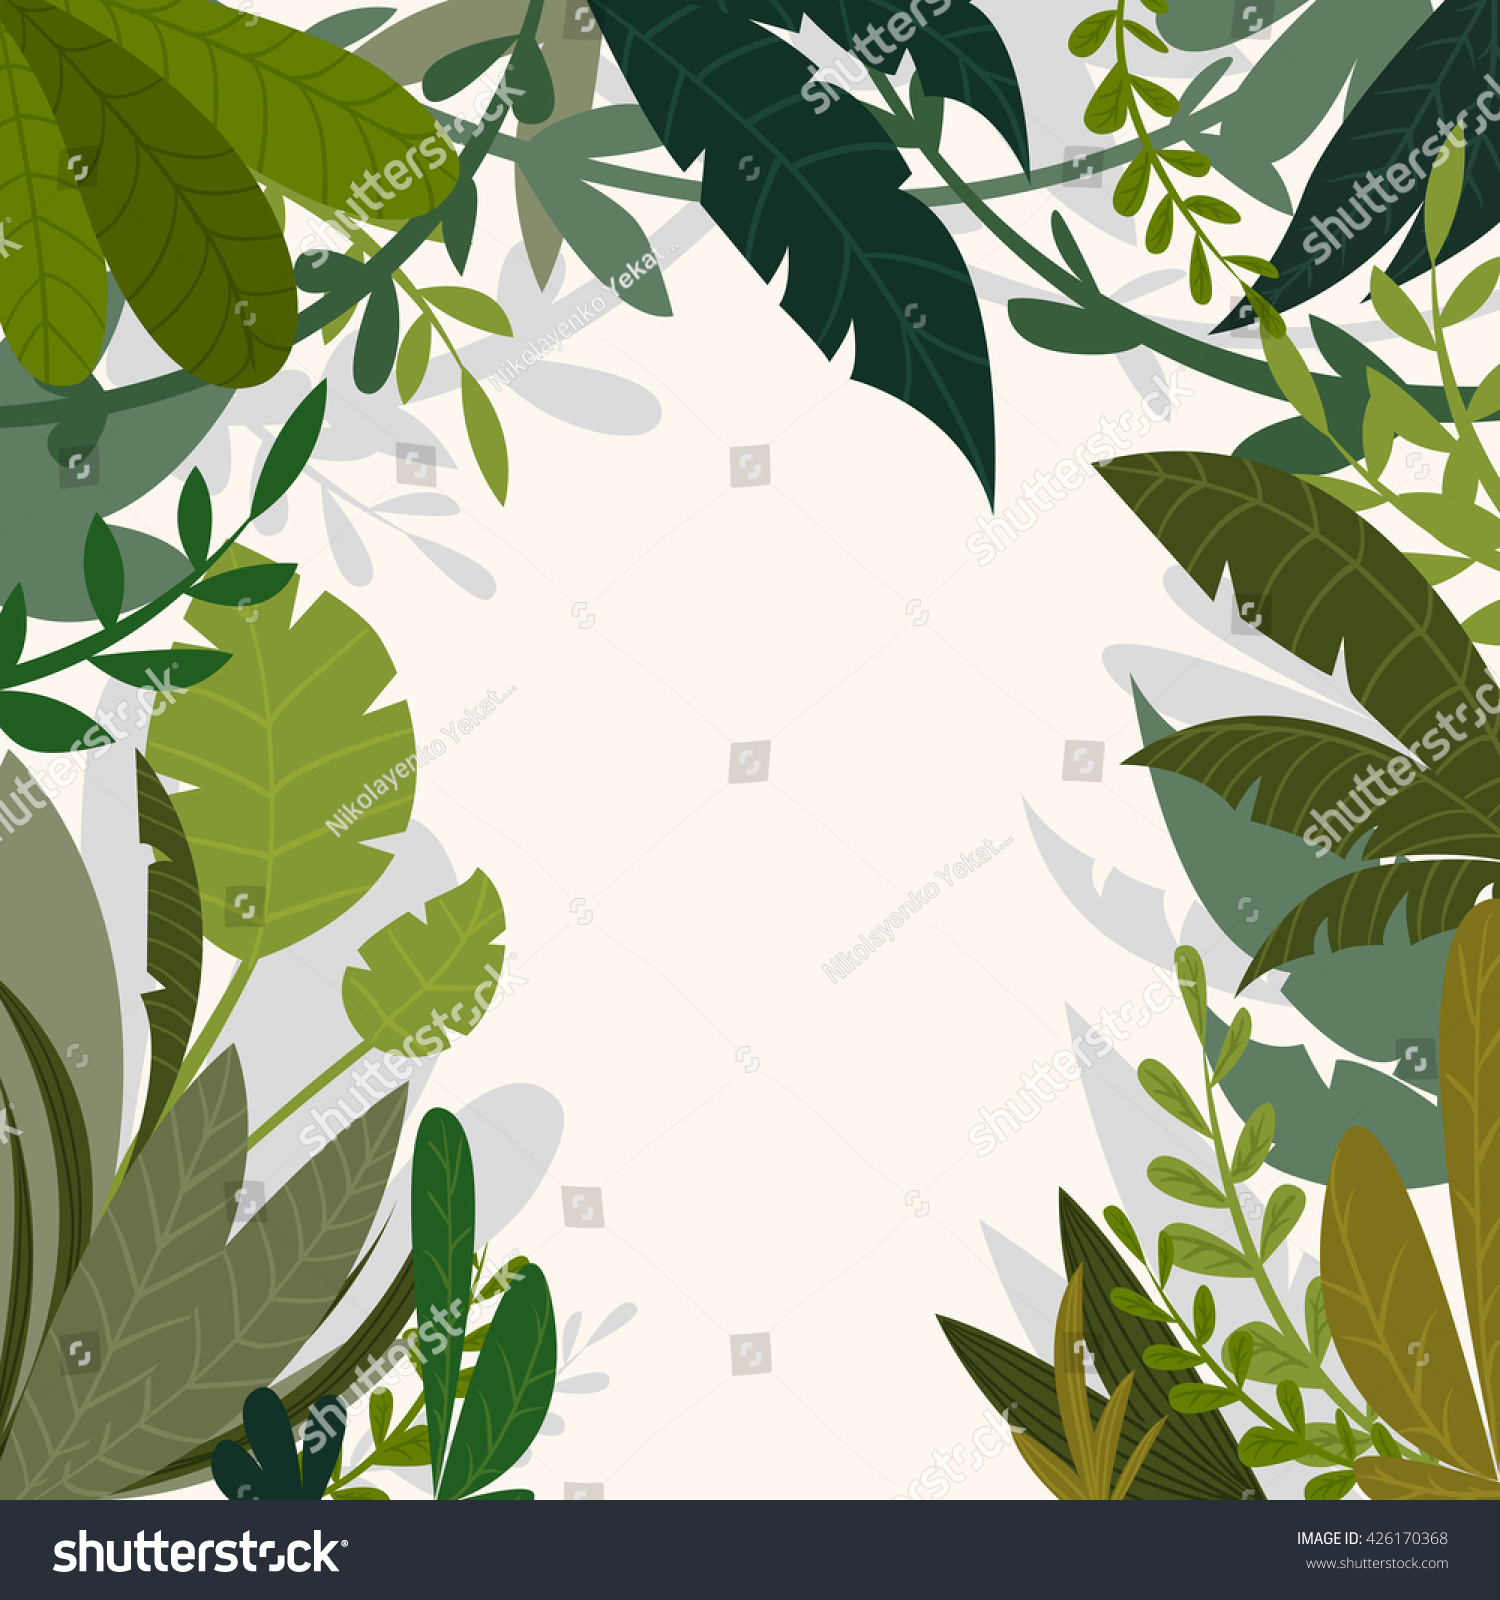 Tropical jungle background with palm trees and leaves in cartoon style Vector illustration